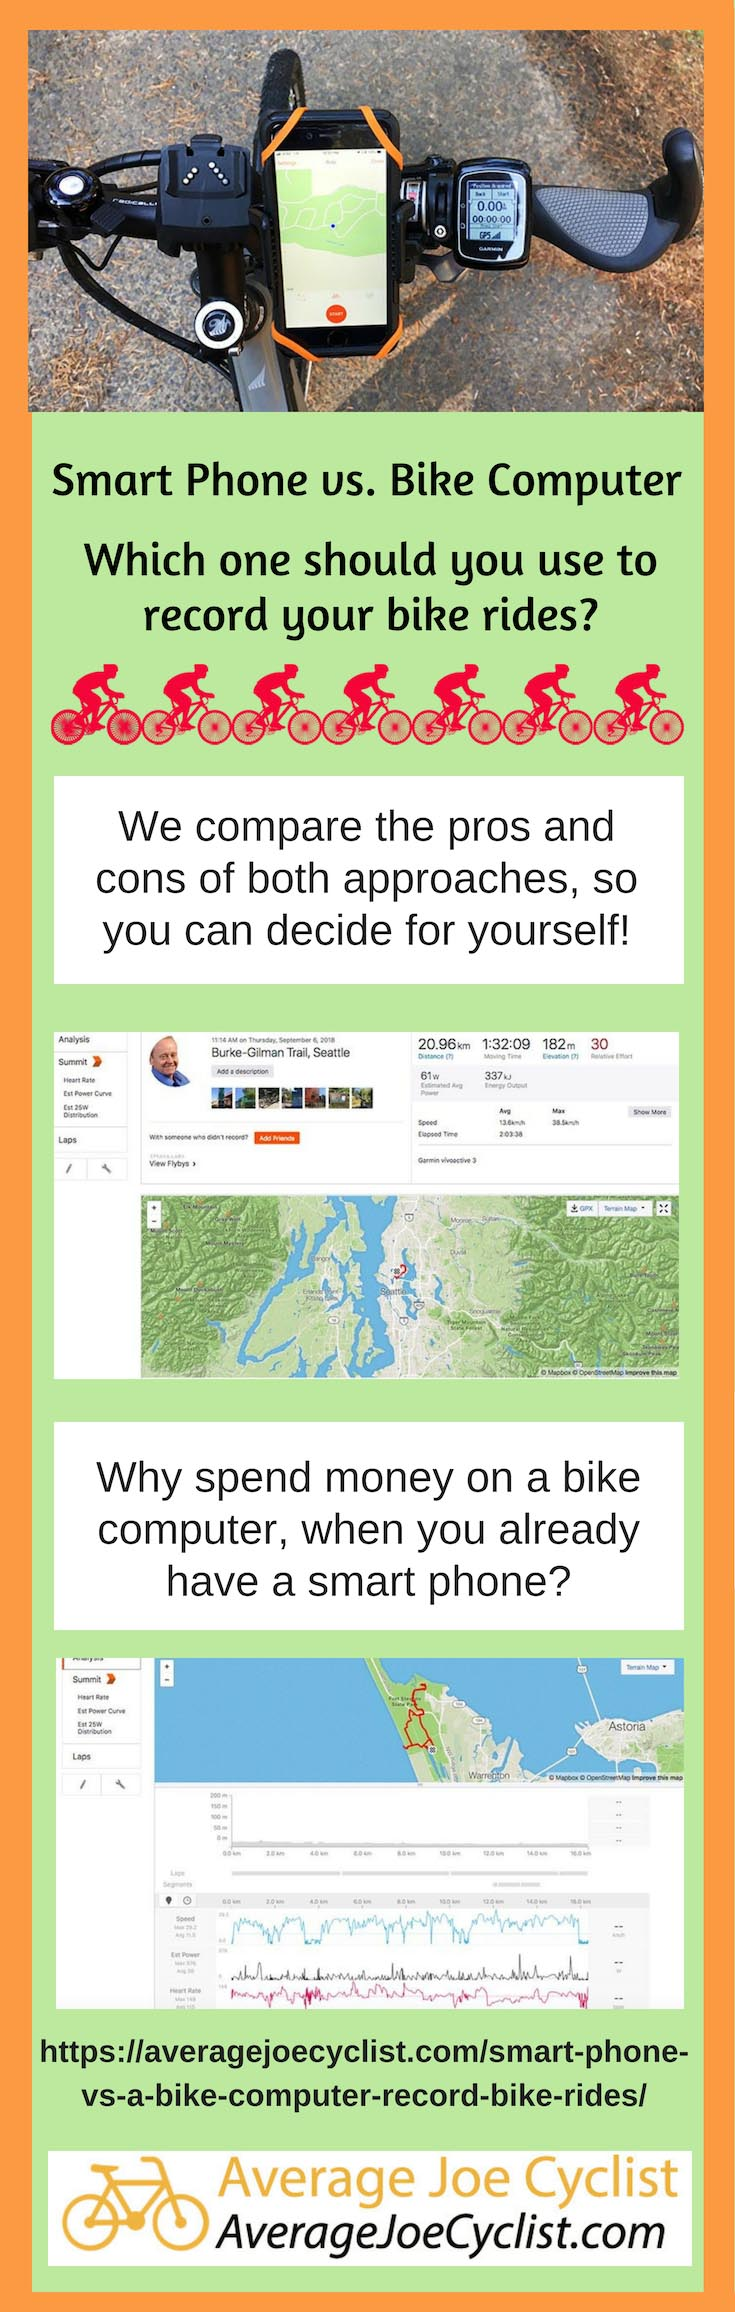 Smart Phone vs a Bike Computer for Recording Bike Rides - Which is Better?